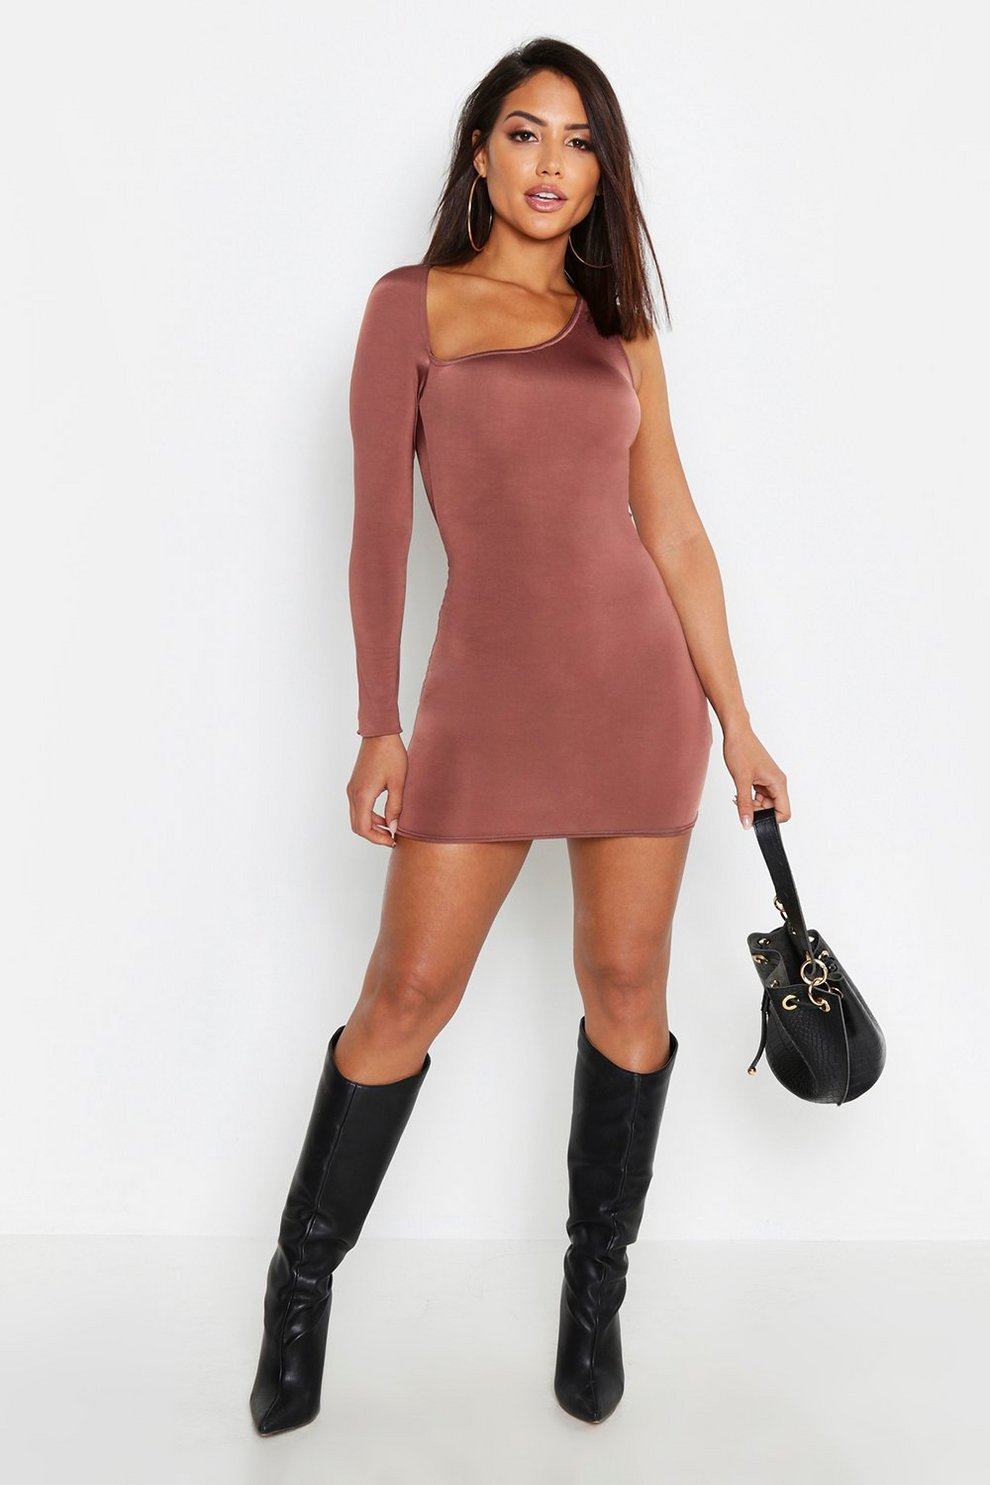 f30843c9a3f77 Bodycon Dress With Knee High Boots